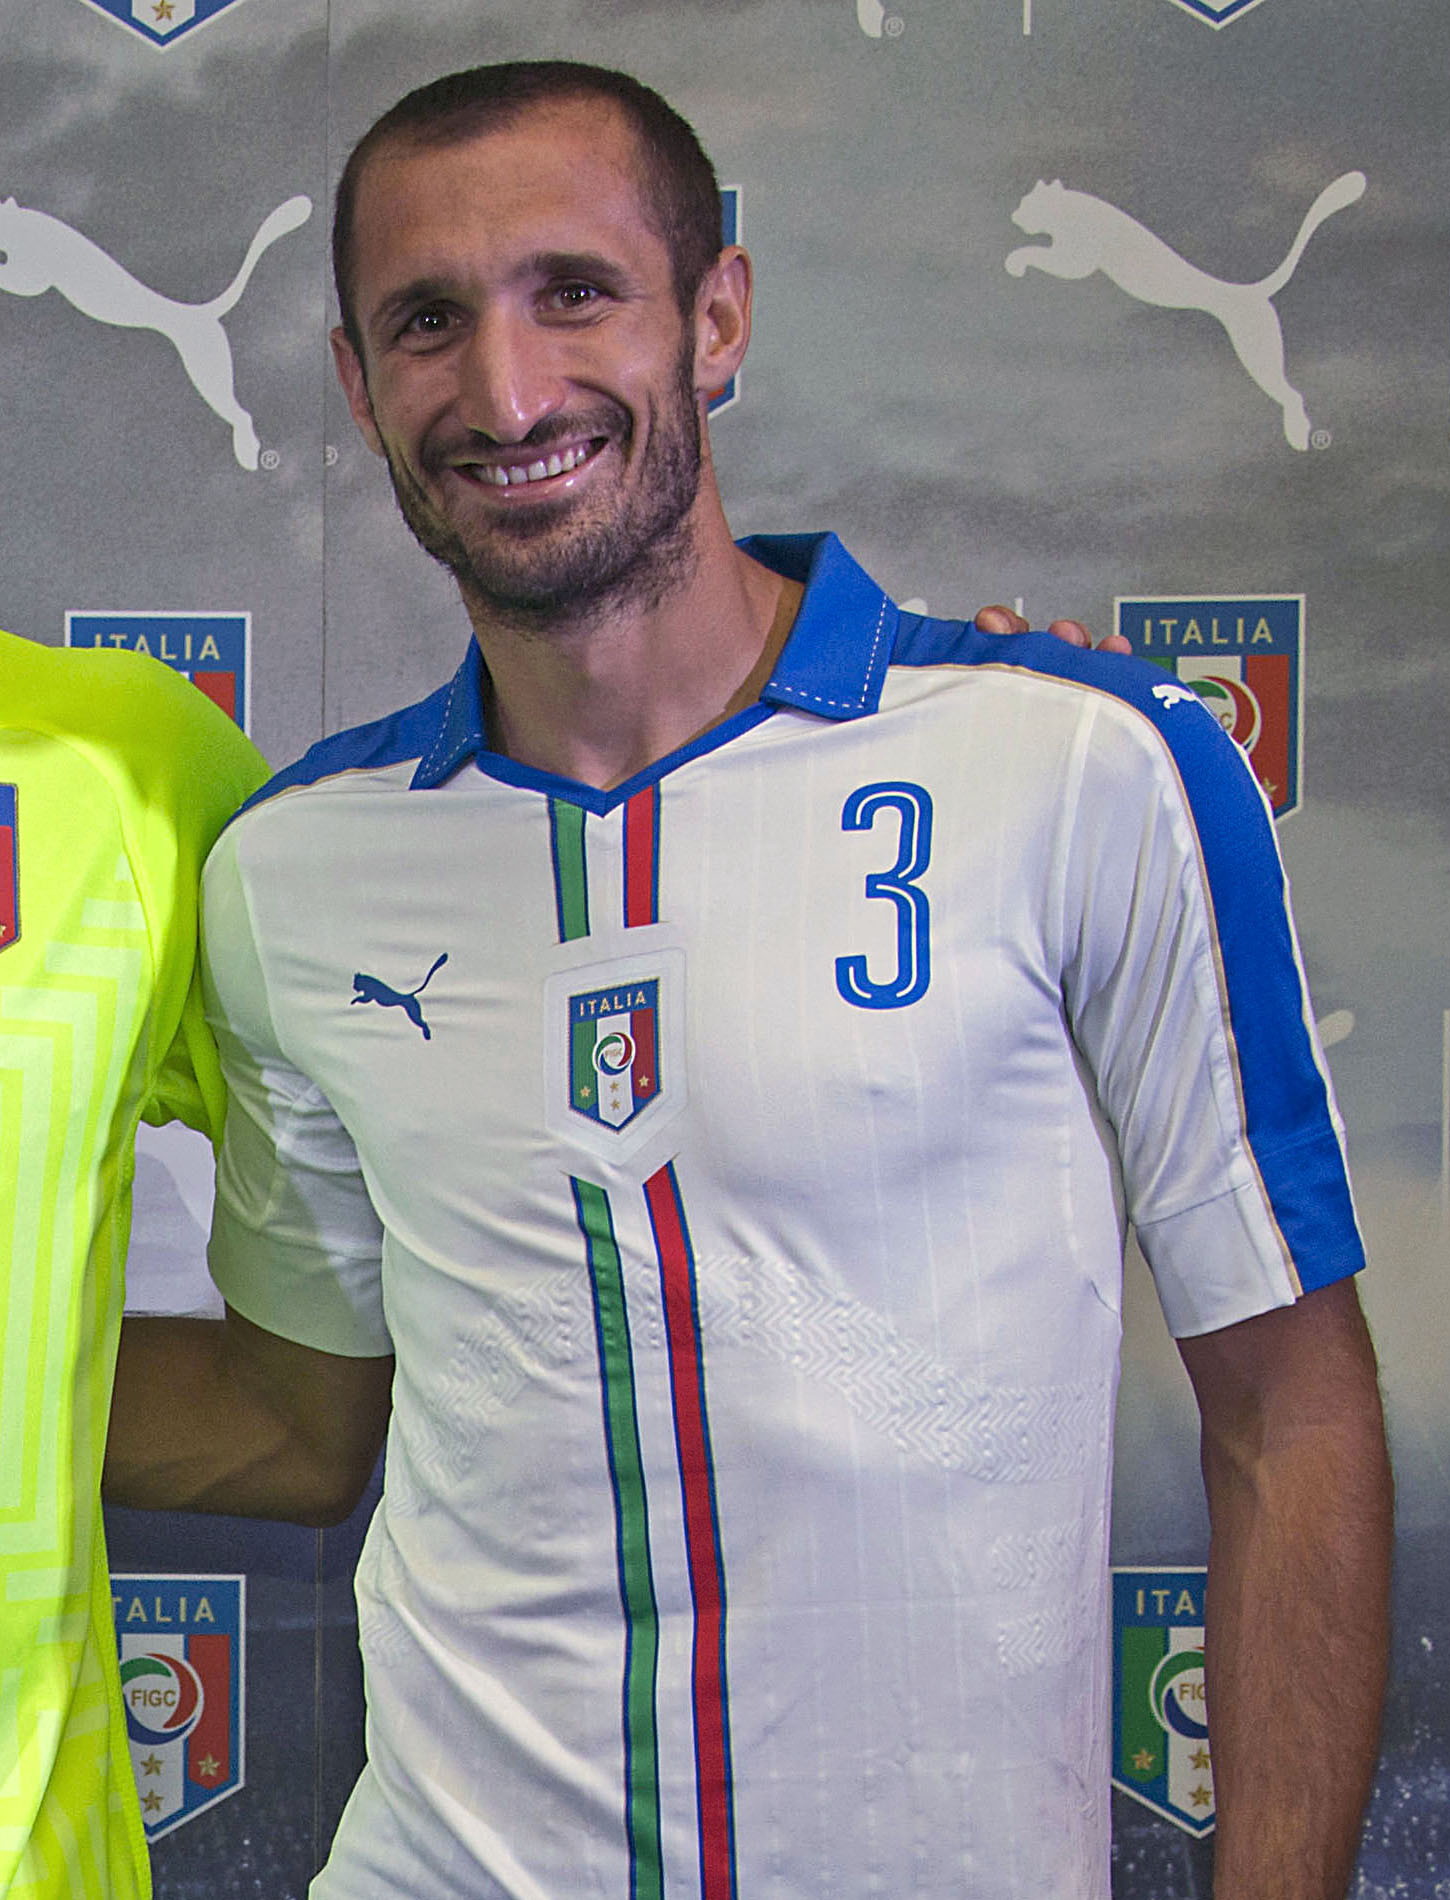 The 34-year old son of father Fabio Chiellini and mother Lucia Chiellini Giorgio Chiellini in 2018 photo. Giorgio Chiellini earned a  million dollar salary - leaving the net worth at 15 million in 2018